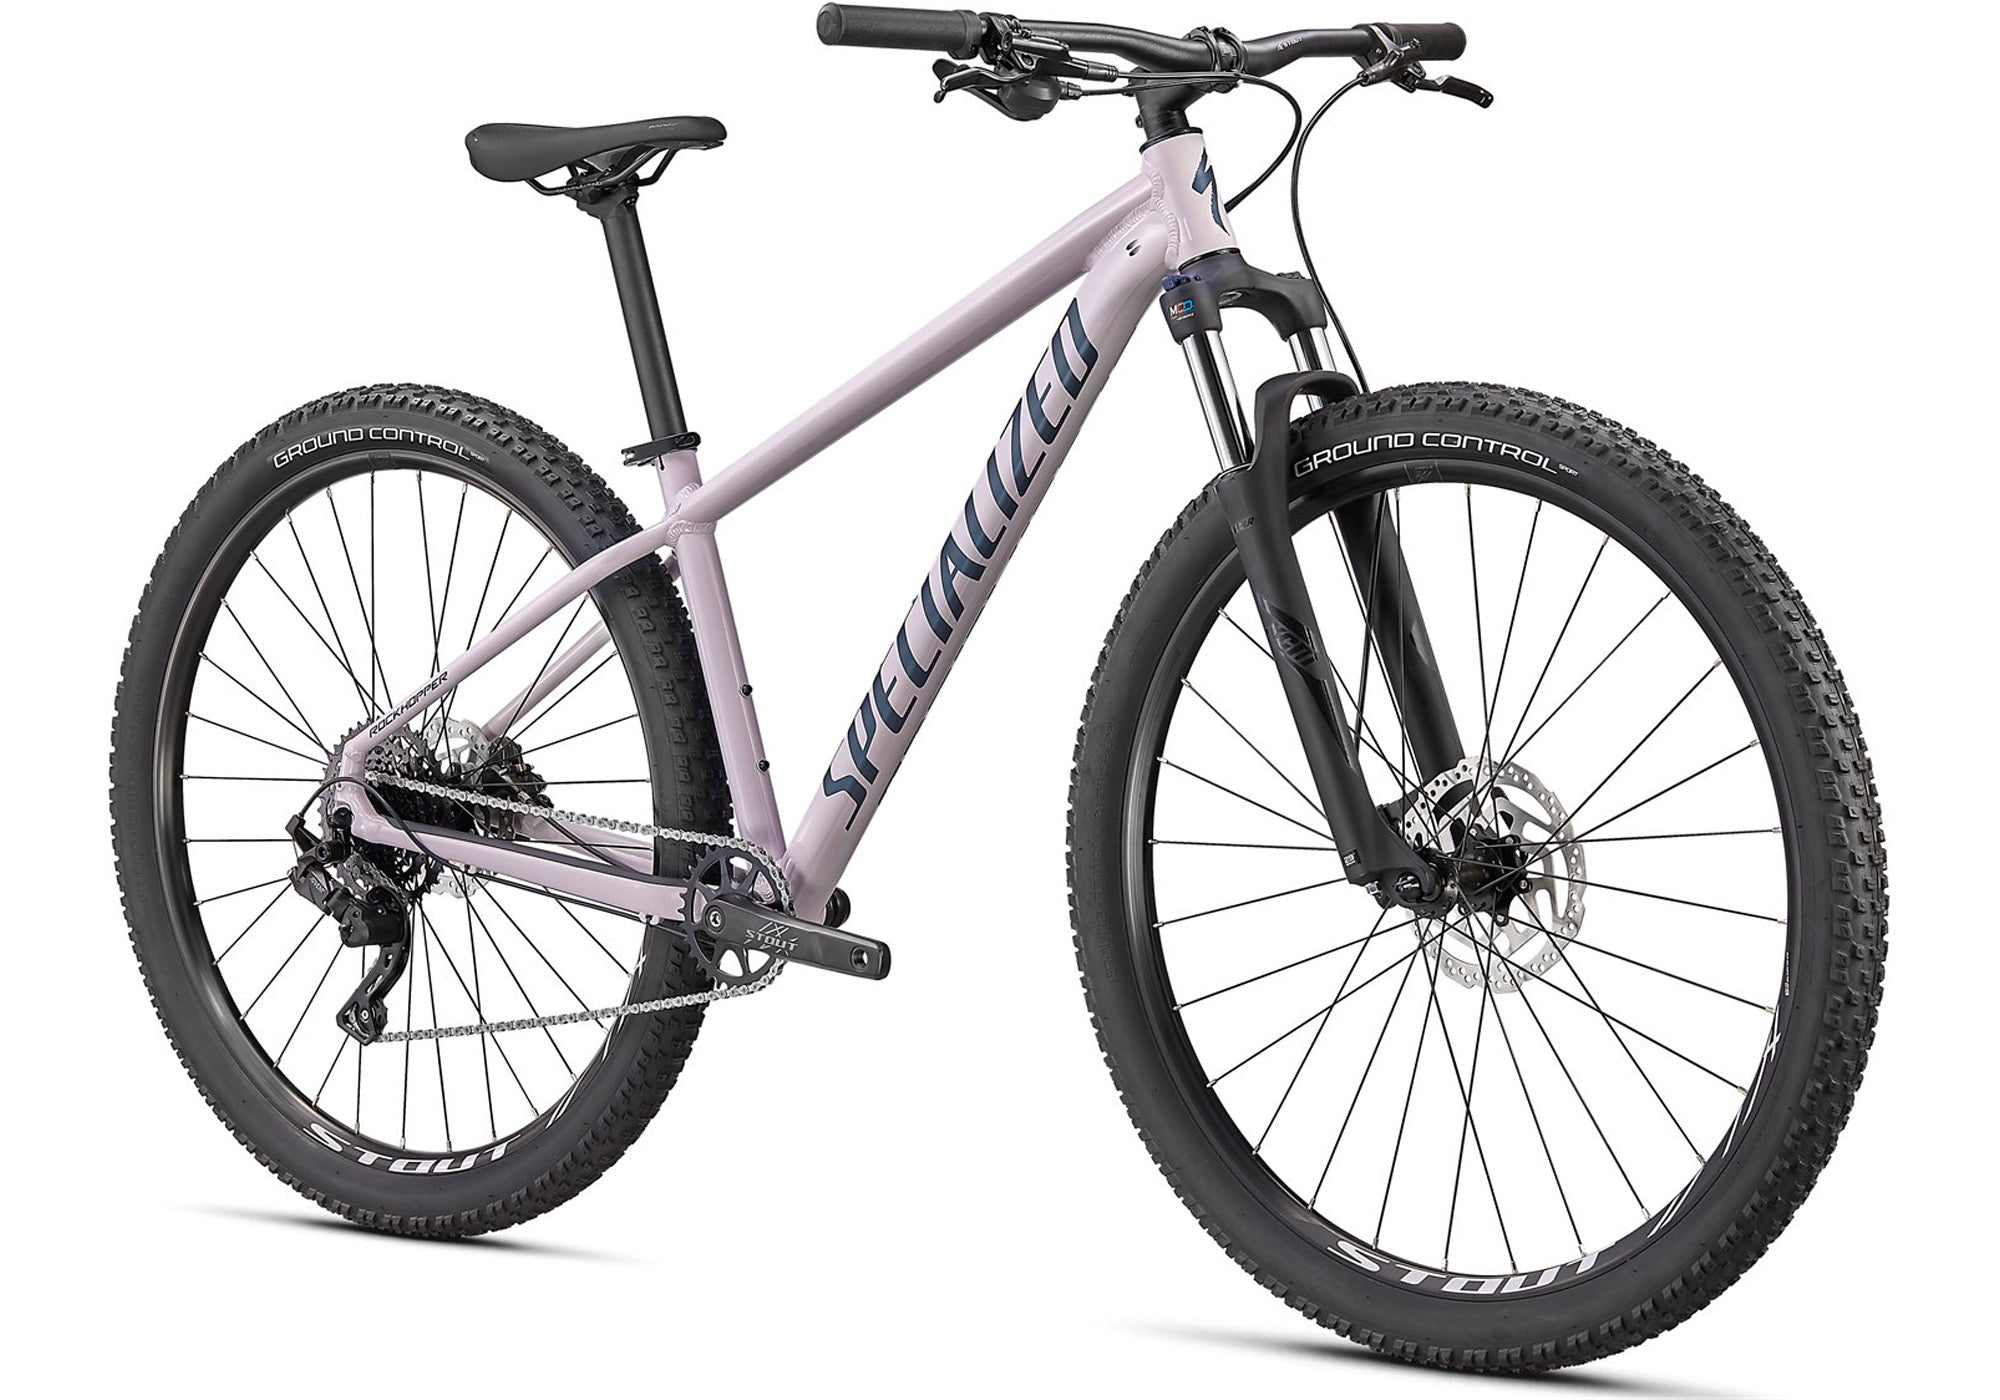 2020 Specialized Rockhopper Comp 29 Mountain Bike, Gloss Clay